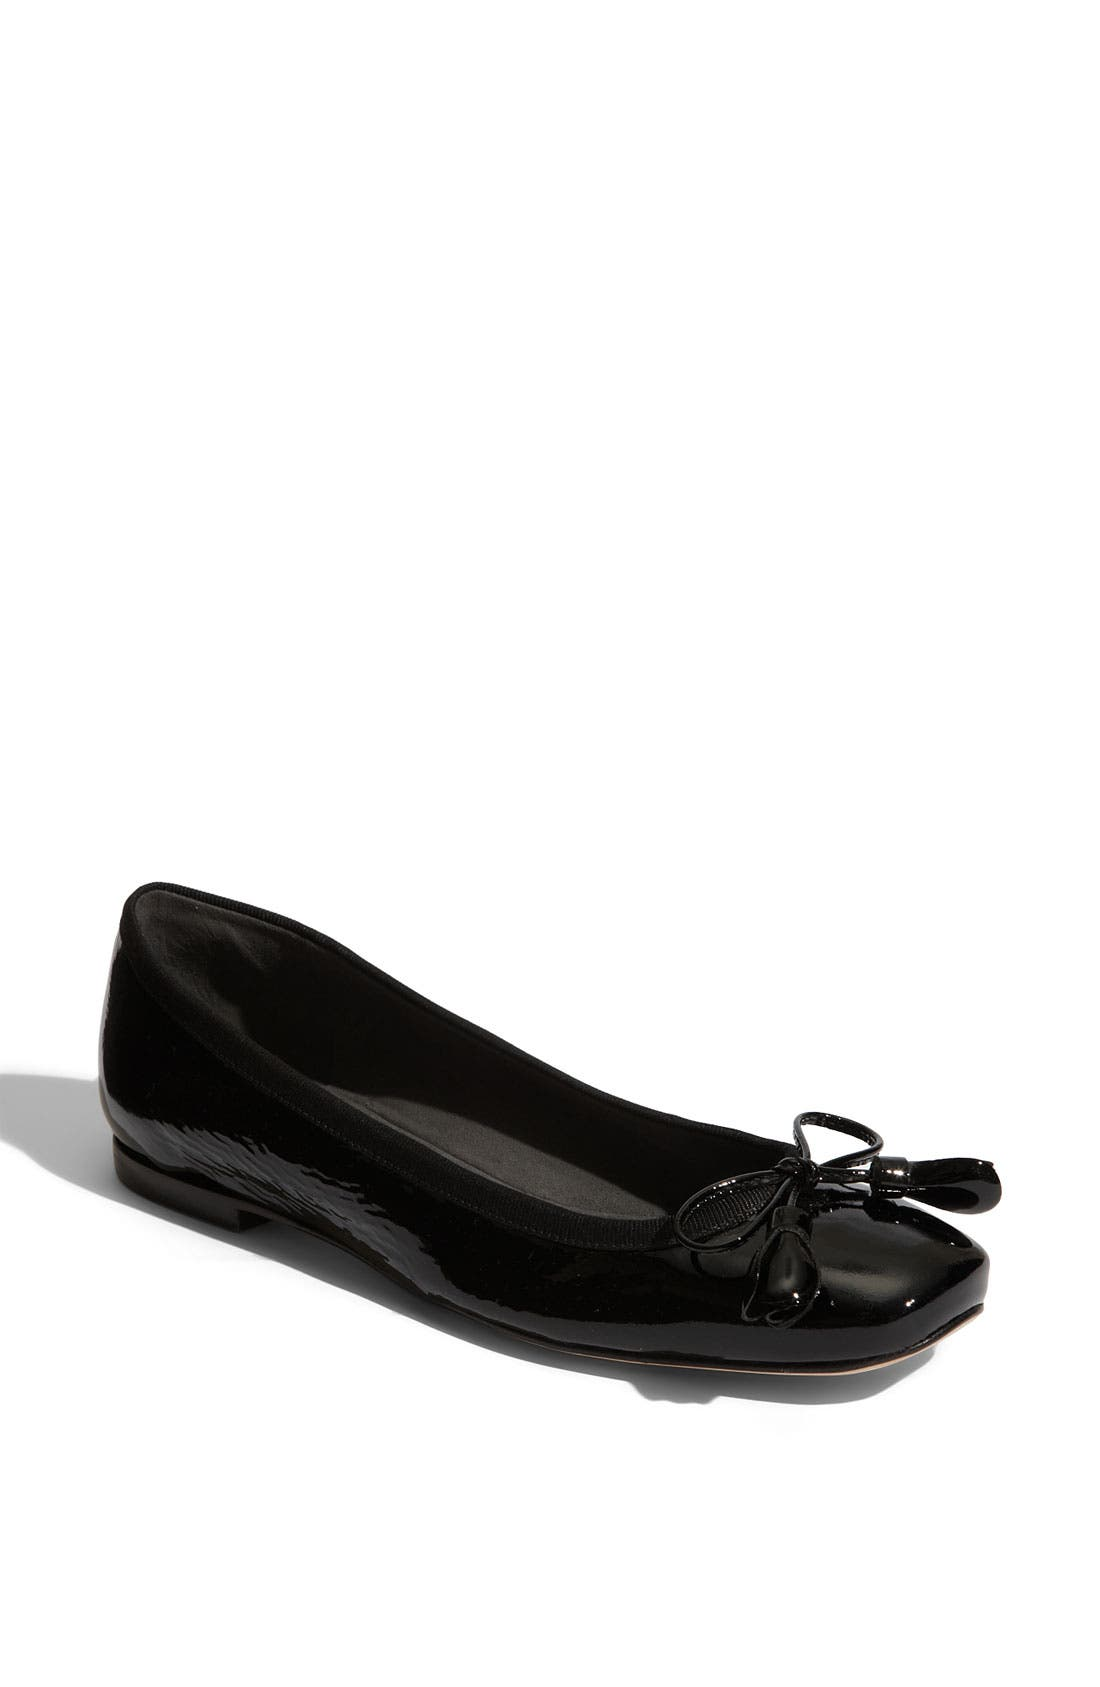 Alternate Image 1 Selected - Stuart Weitzman 'Tulipbow' Ballet Flat